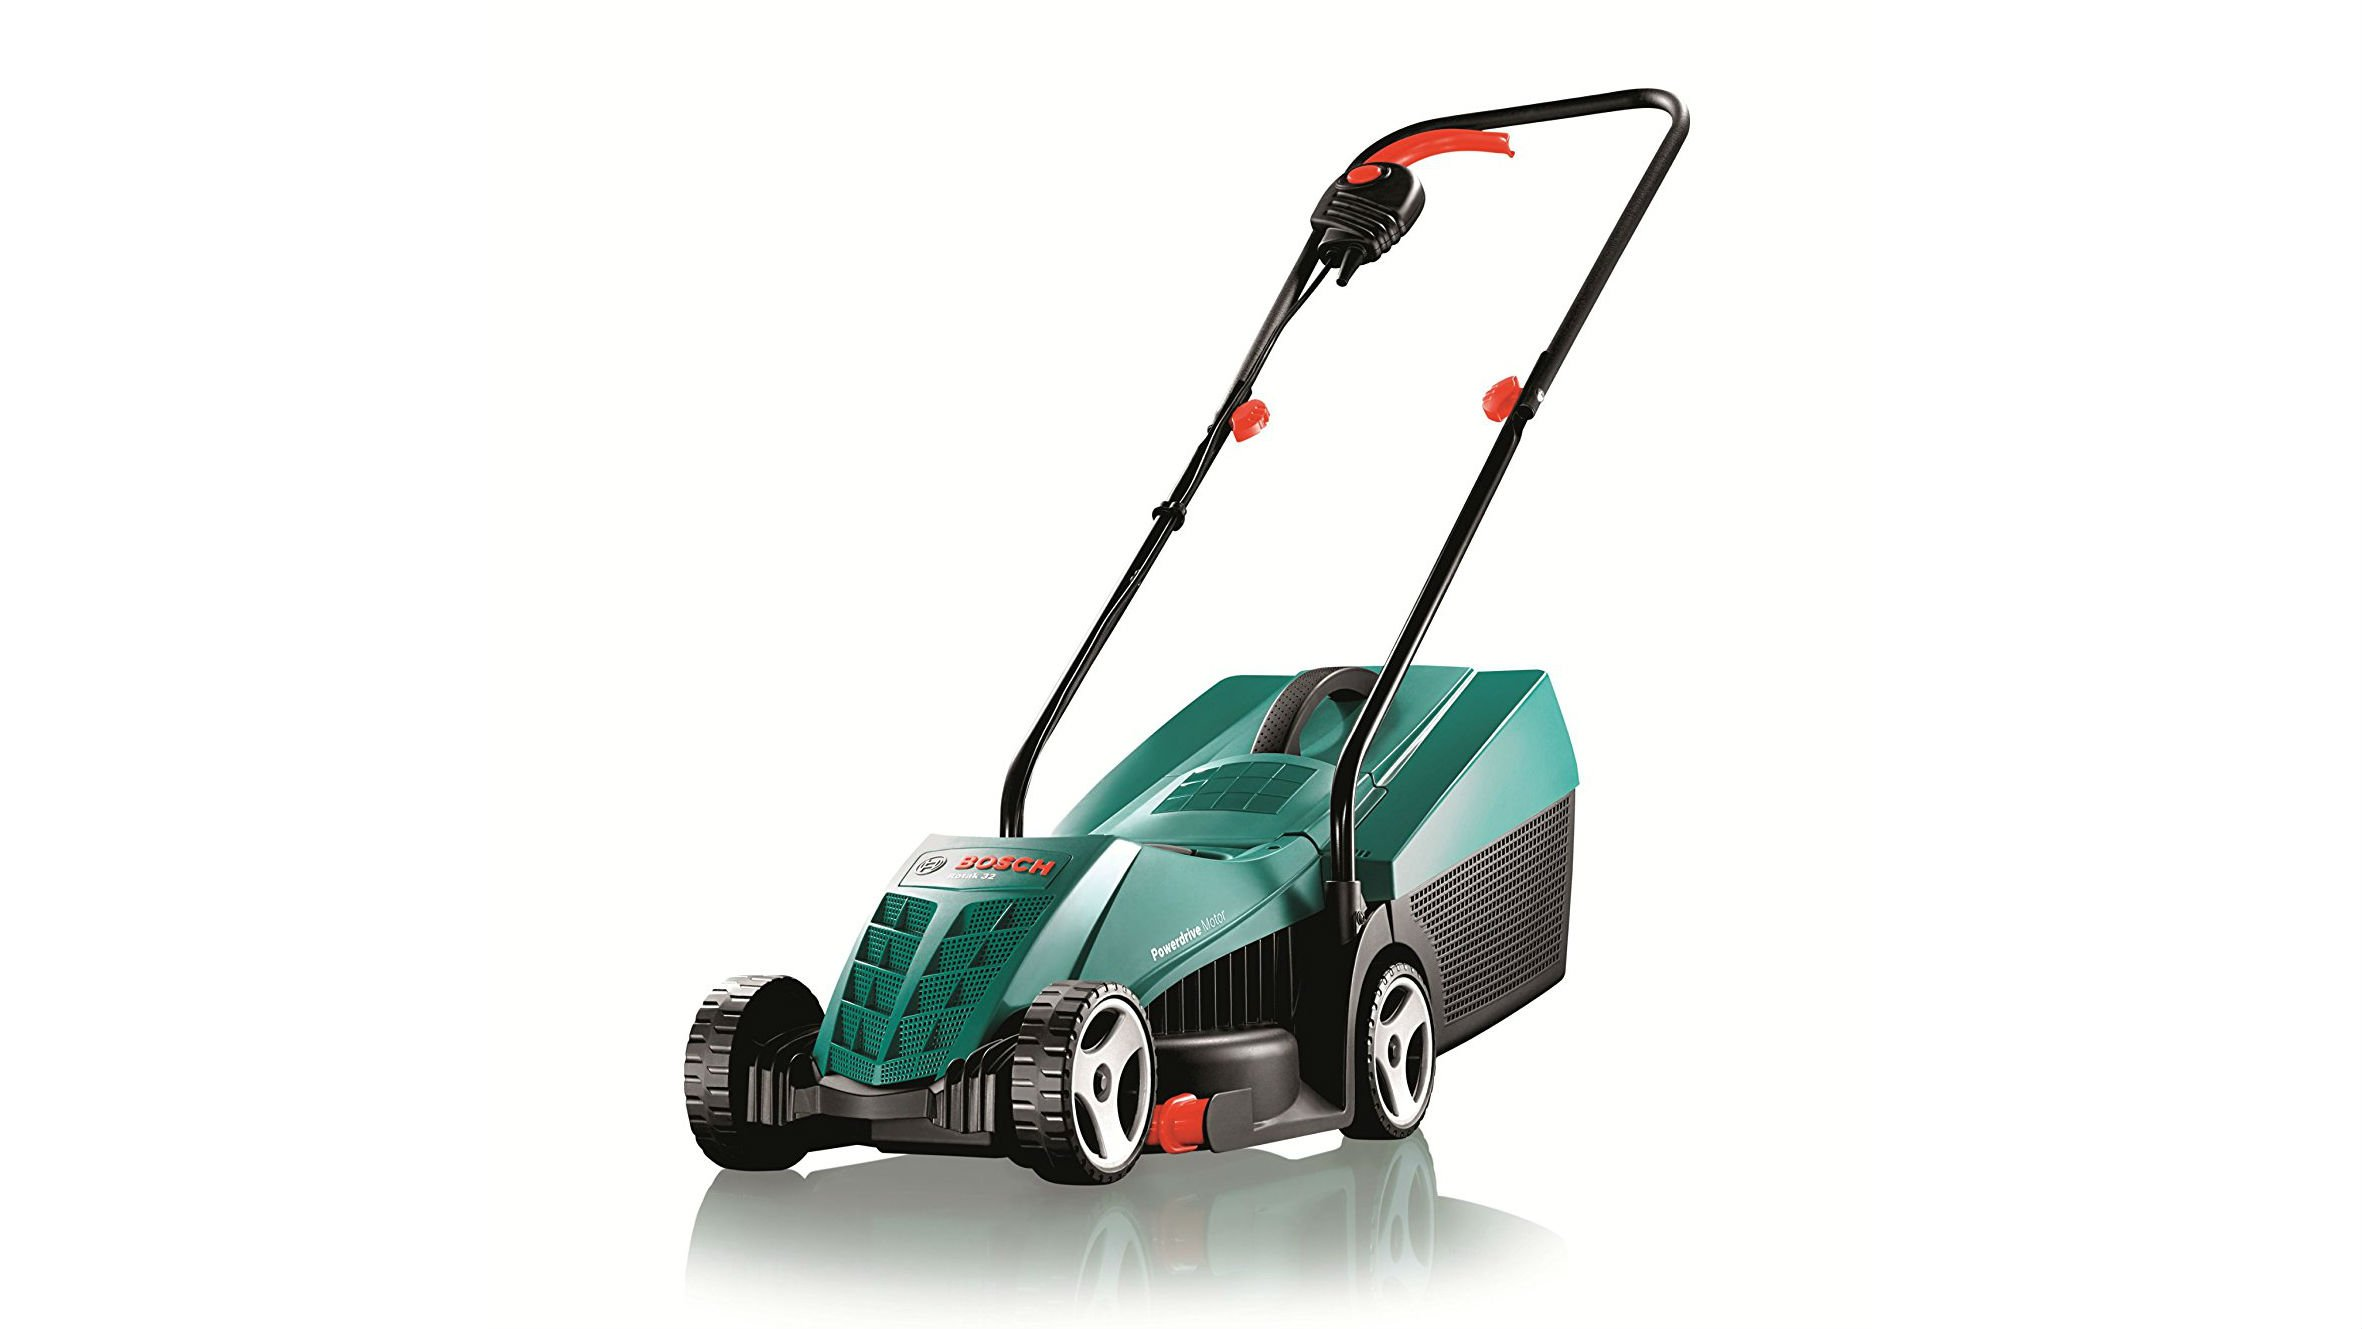 Best lawn mower 2019: The best electric, cordless, petrol